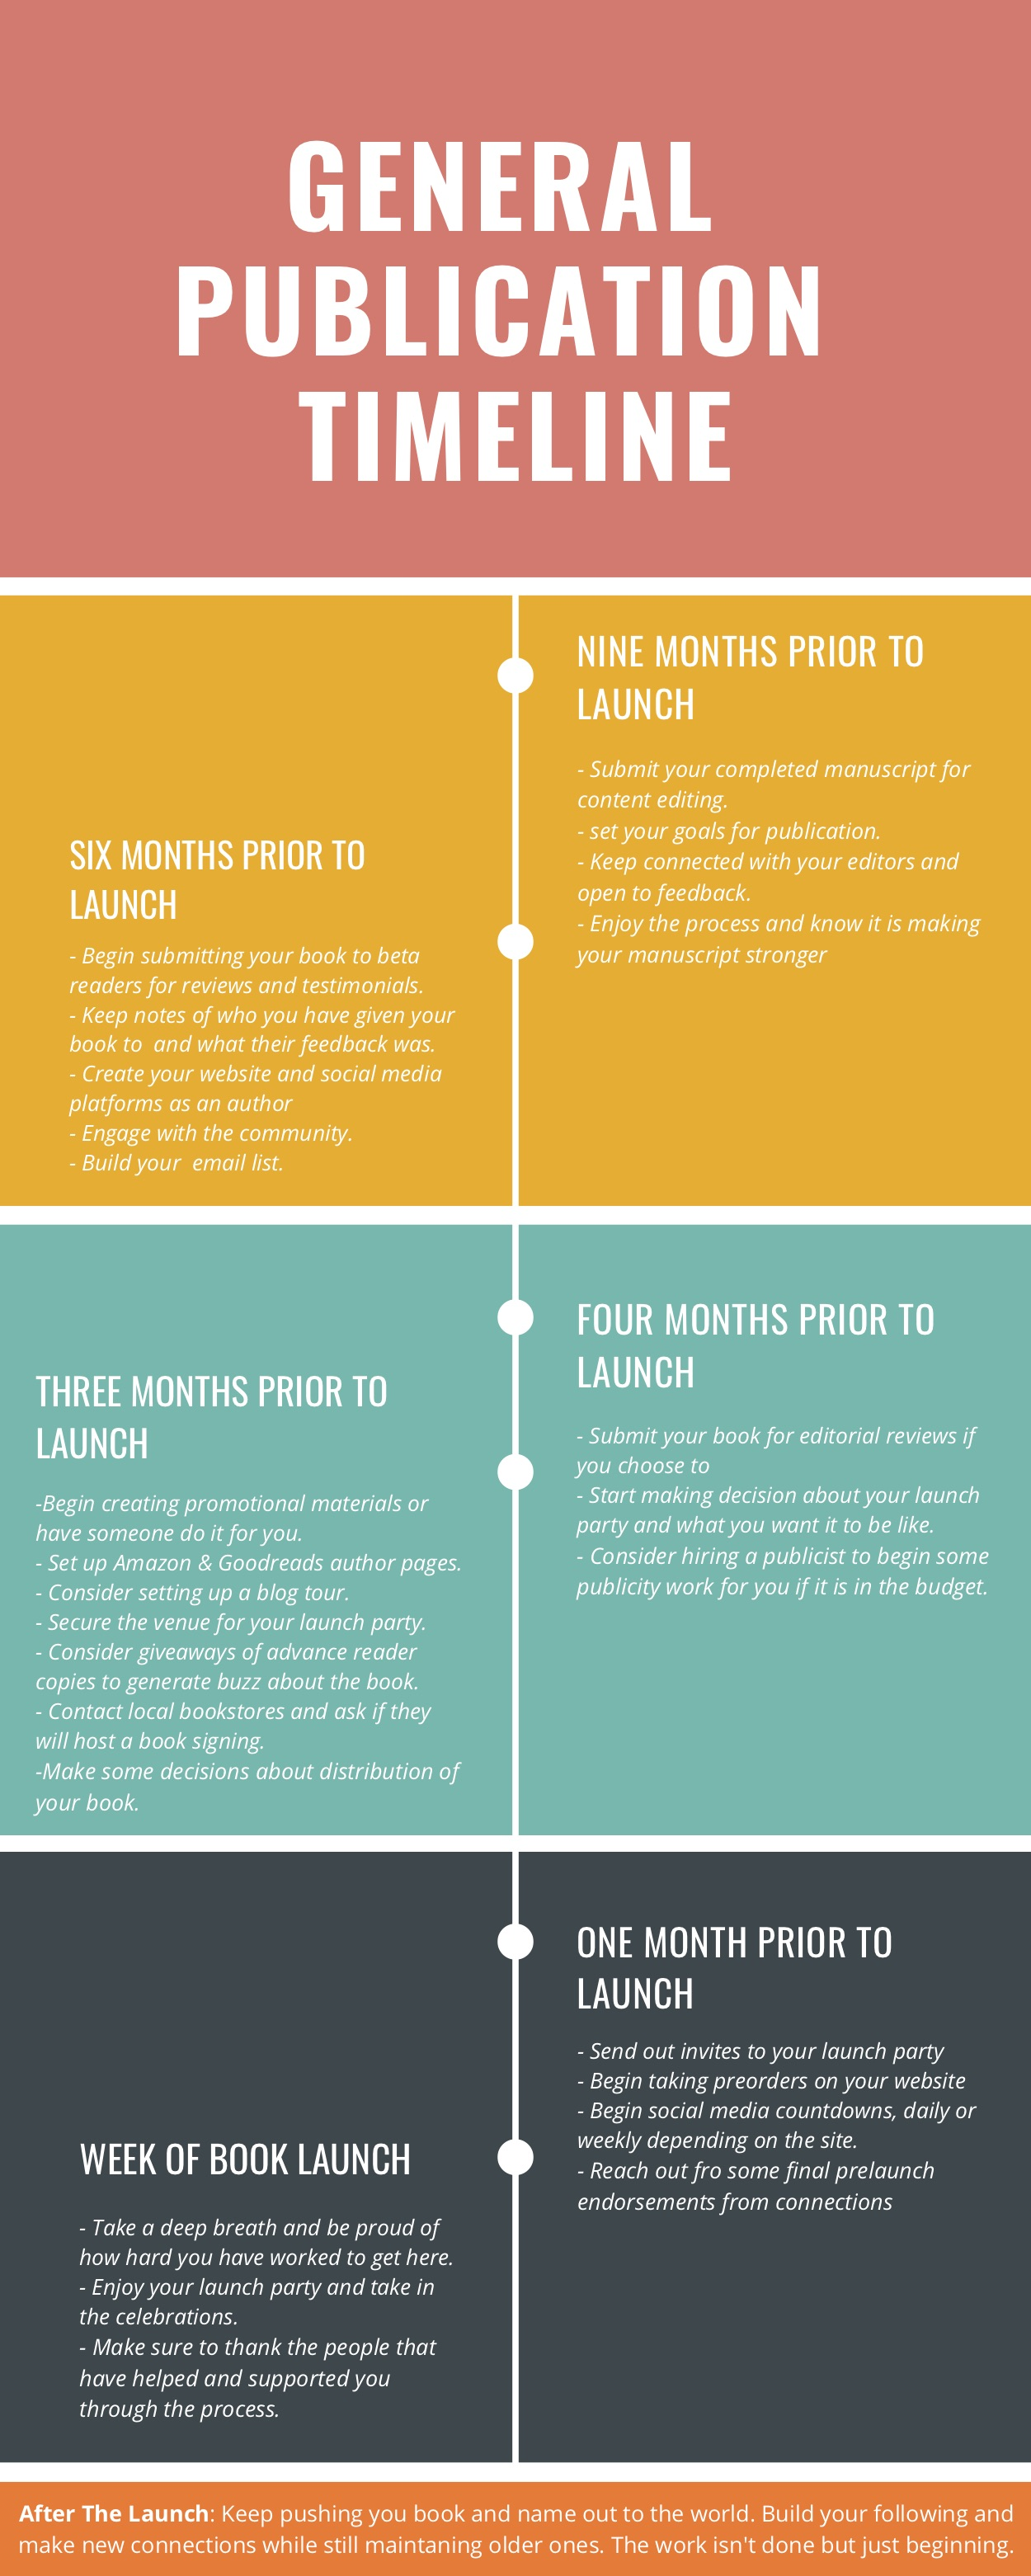 General Publication Timeline - Canva.jpg